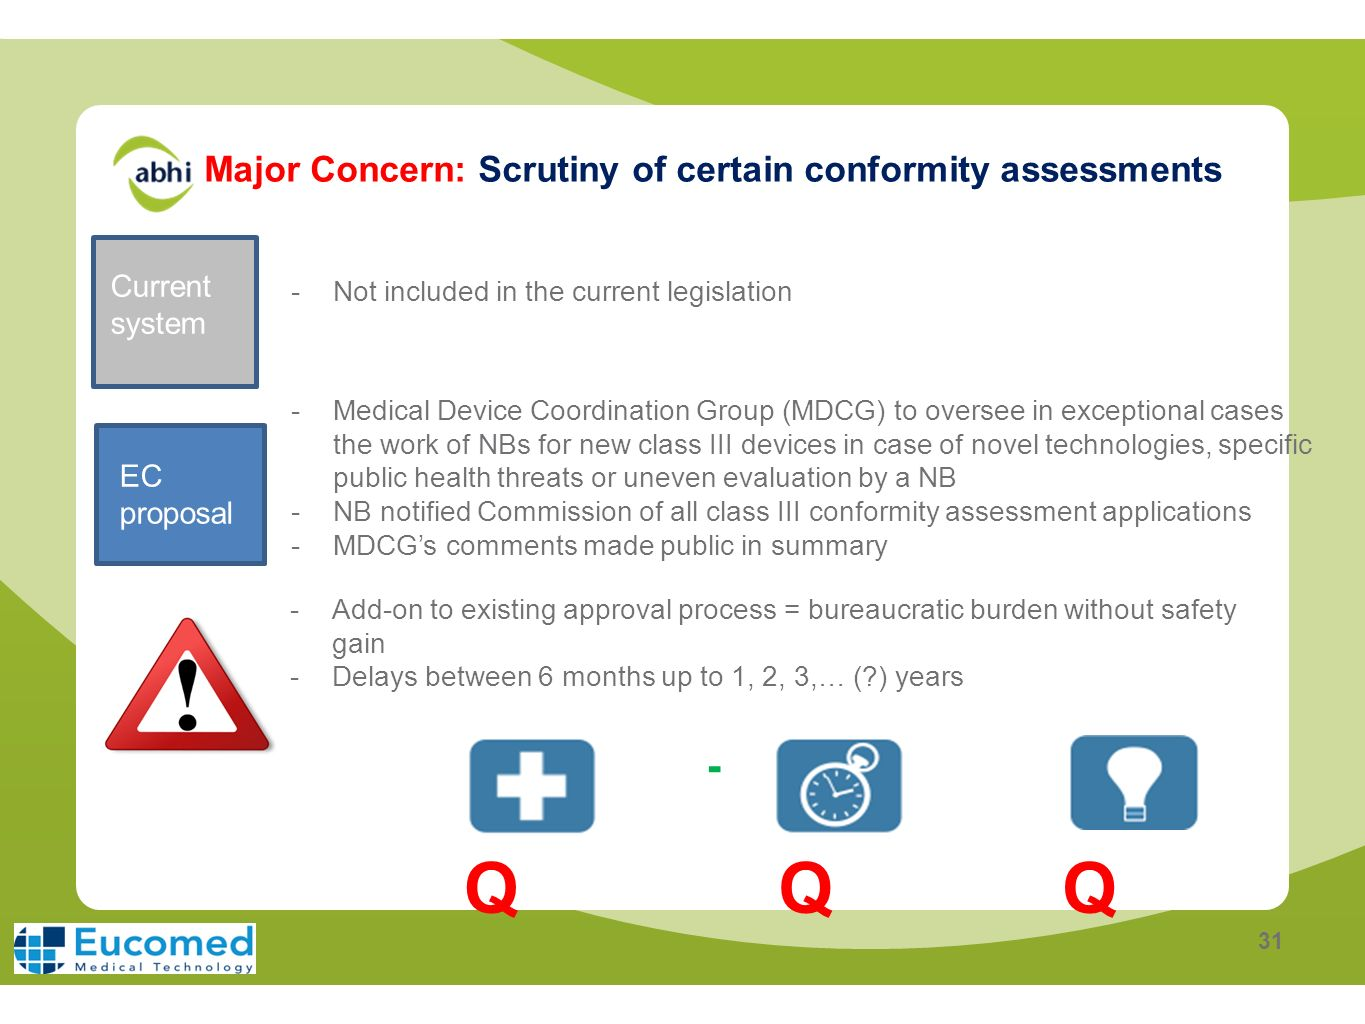 Major Concern: Scrutiny of certain conformity assessments